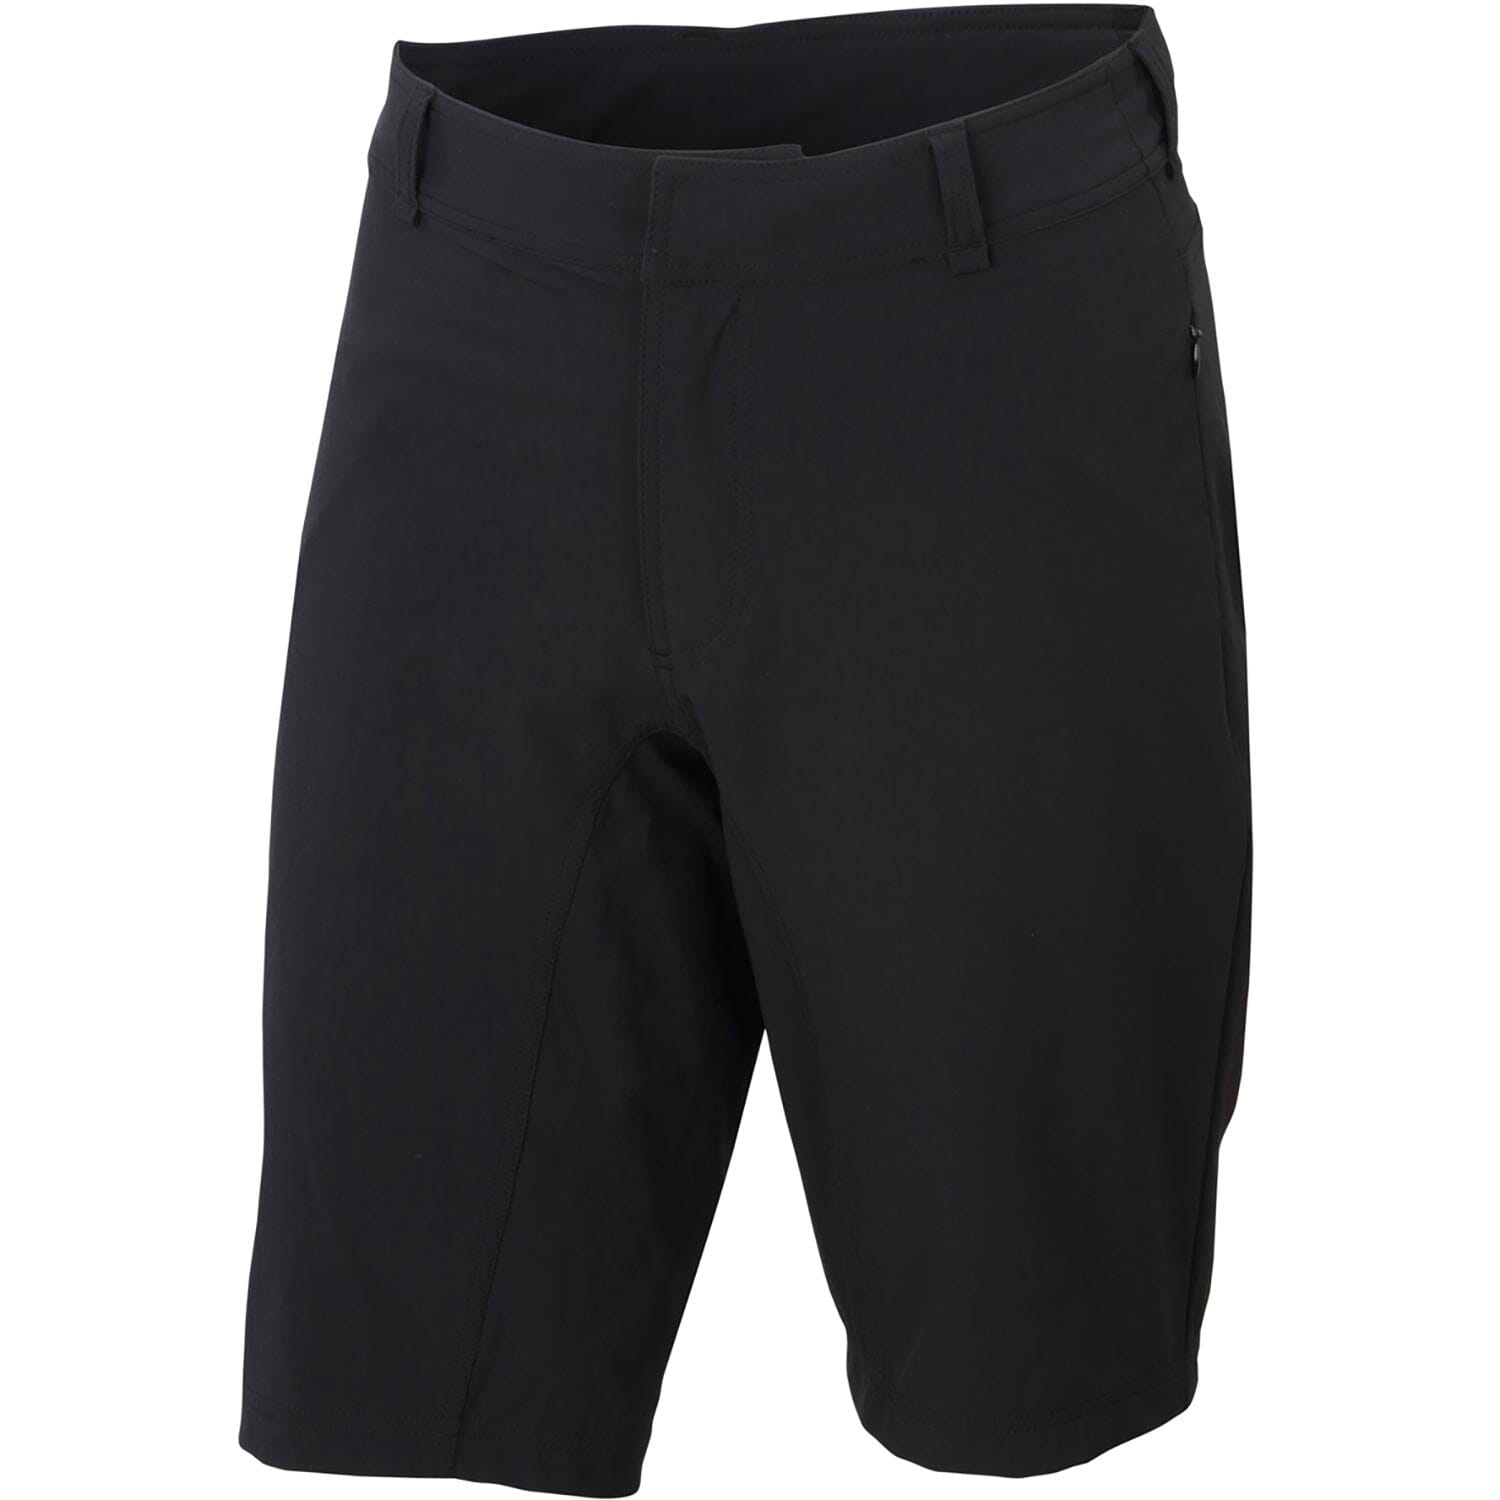 Sportful-Sportful Giara Overshorts-Black-S-SF020050022-saddleback-elite-performance-cycling